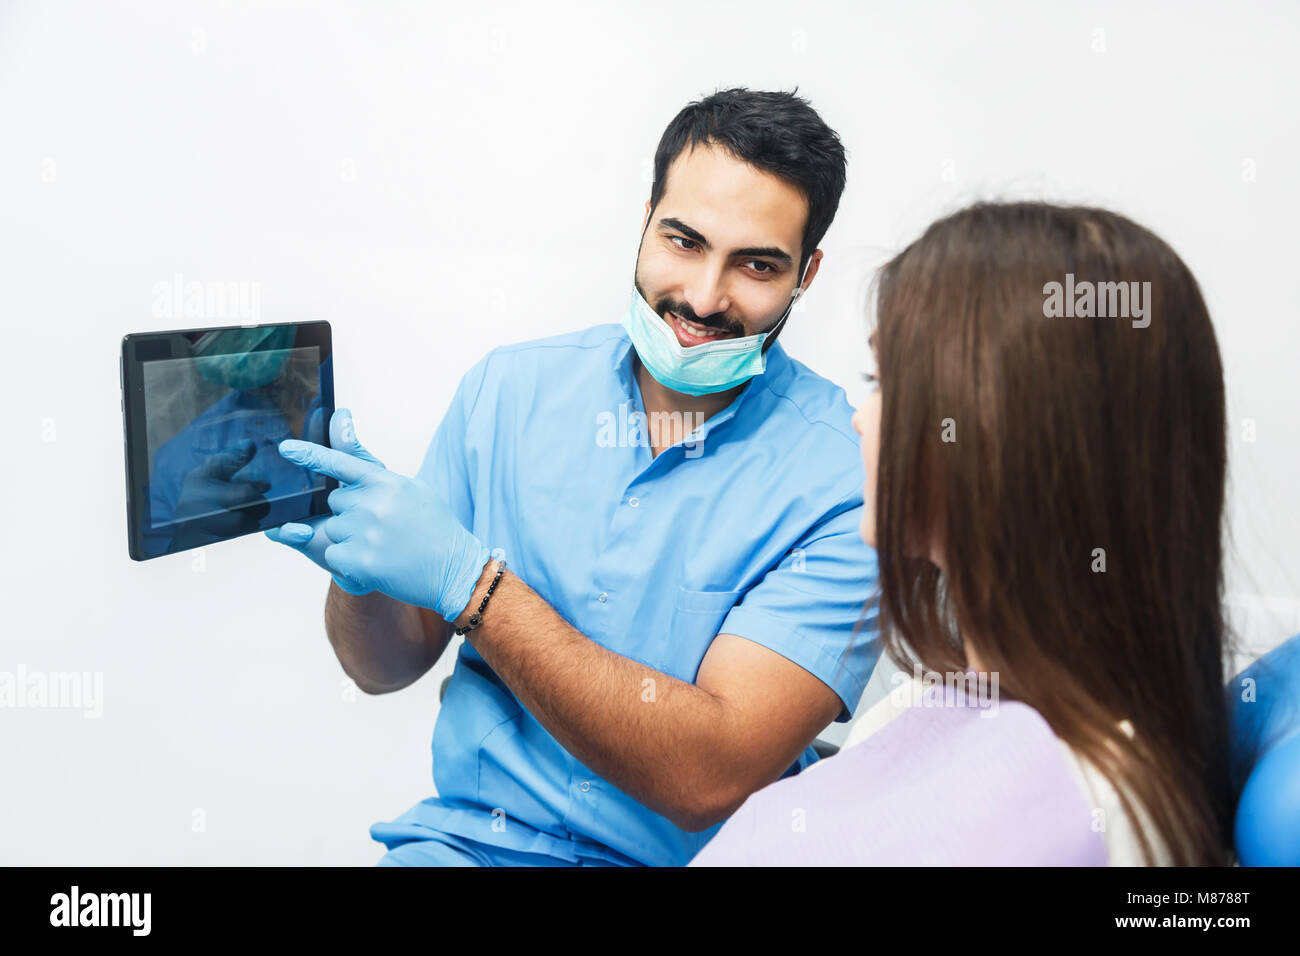 Doctor Shows Teeth X-ray on Tablet - Stock Image